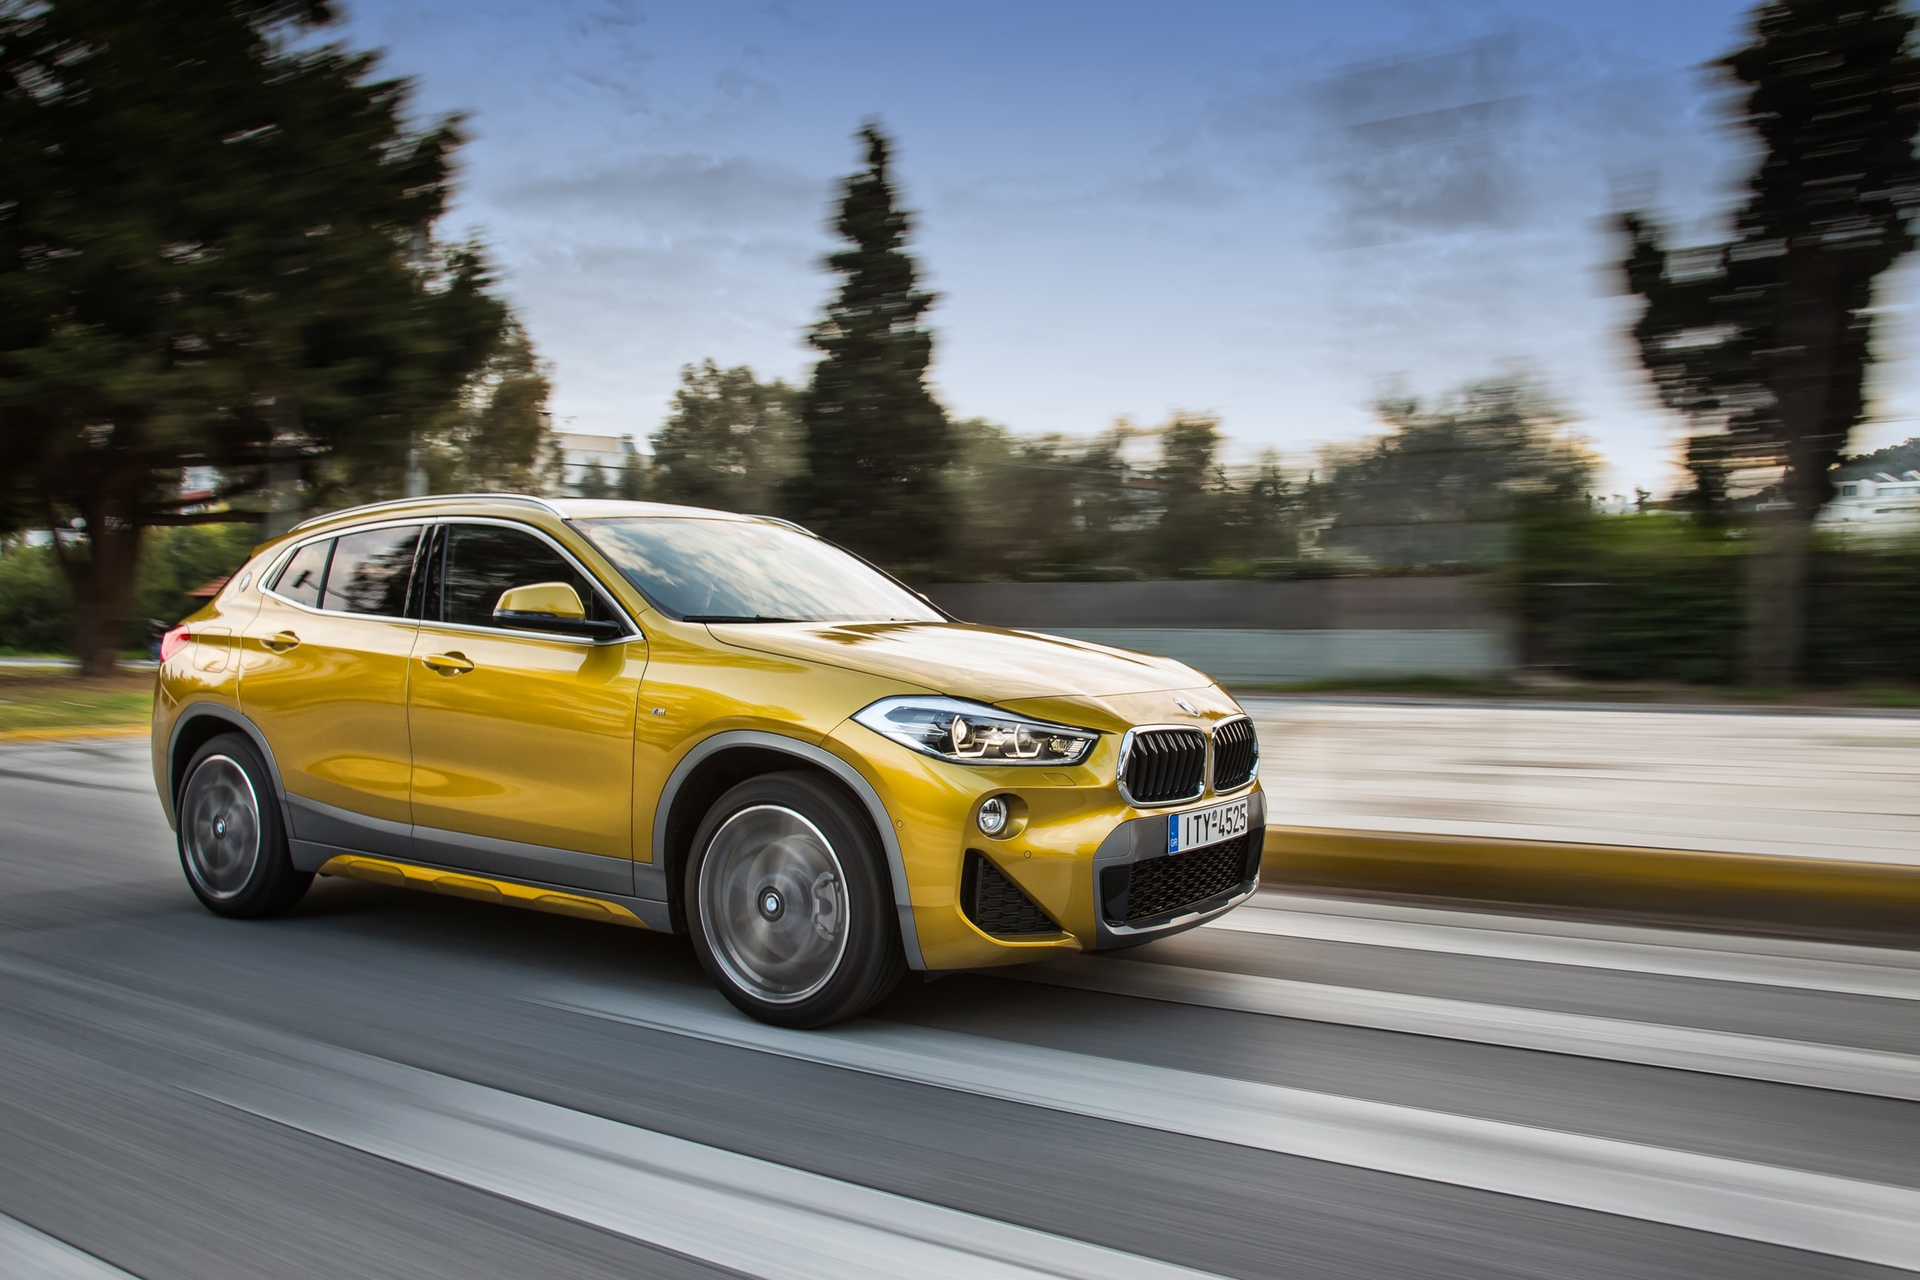 BMW_X2_Greek_presskit_0103